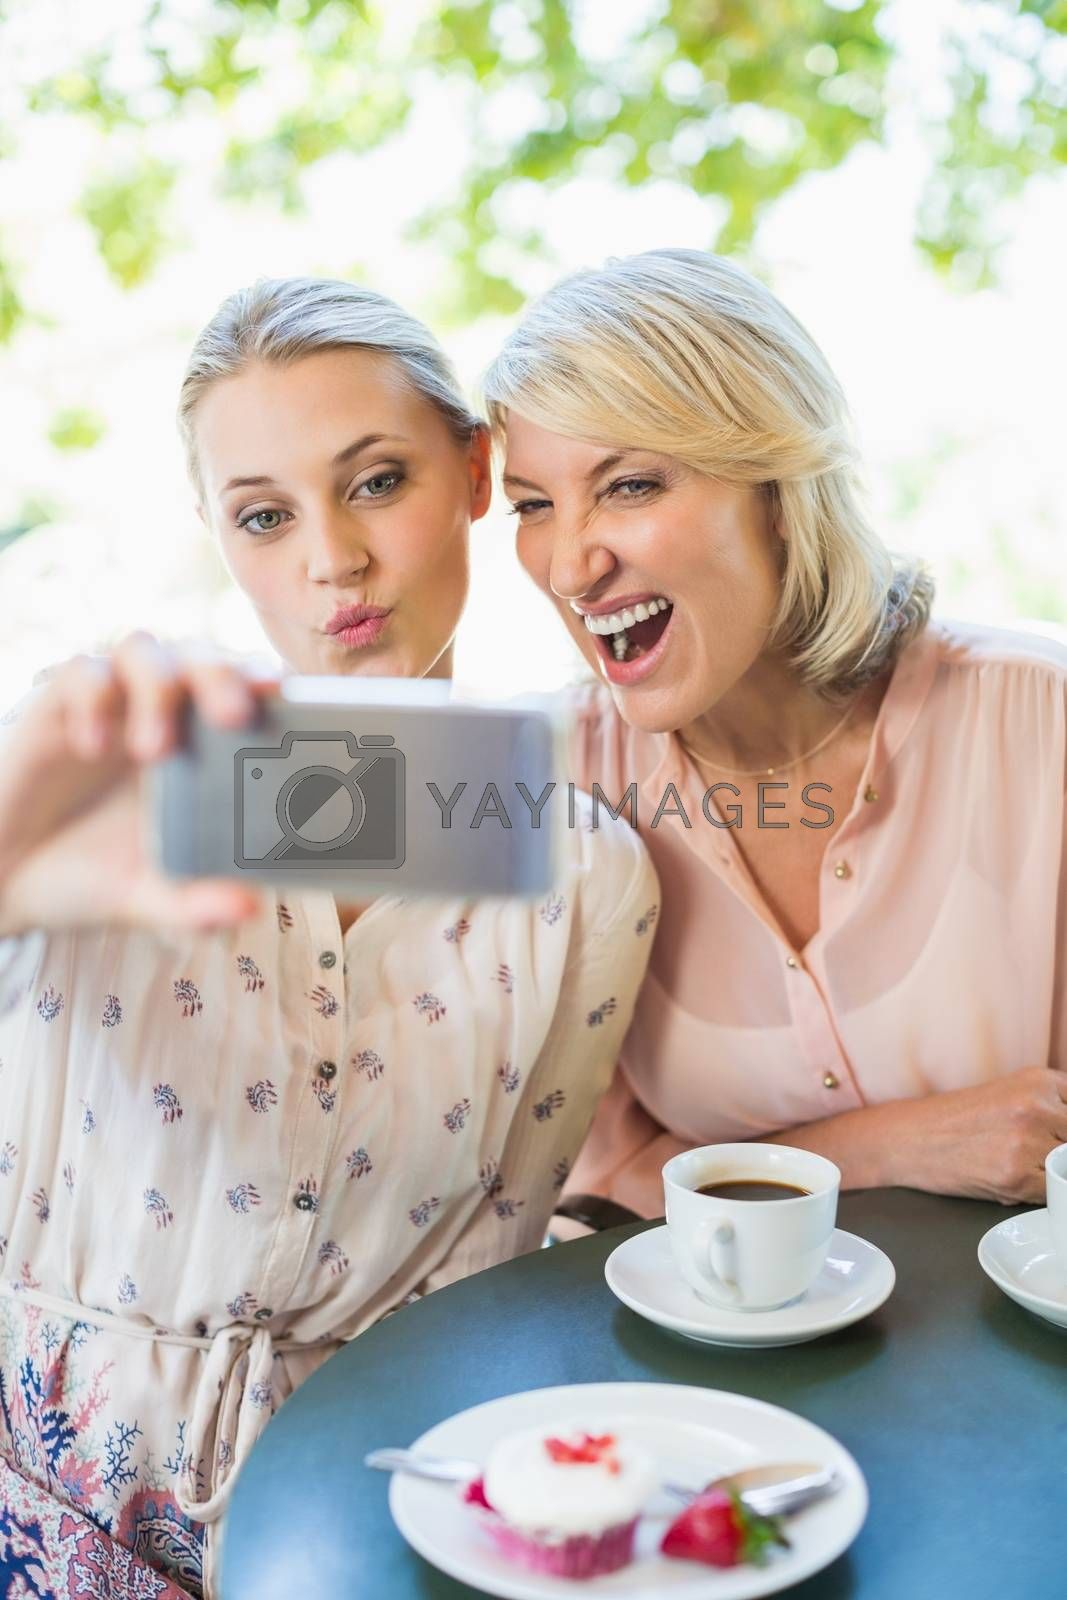 Friends taking a selfie on mobile phone at restaurant